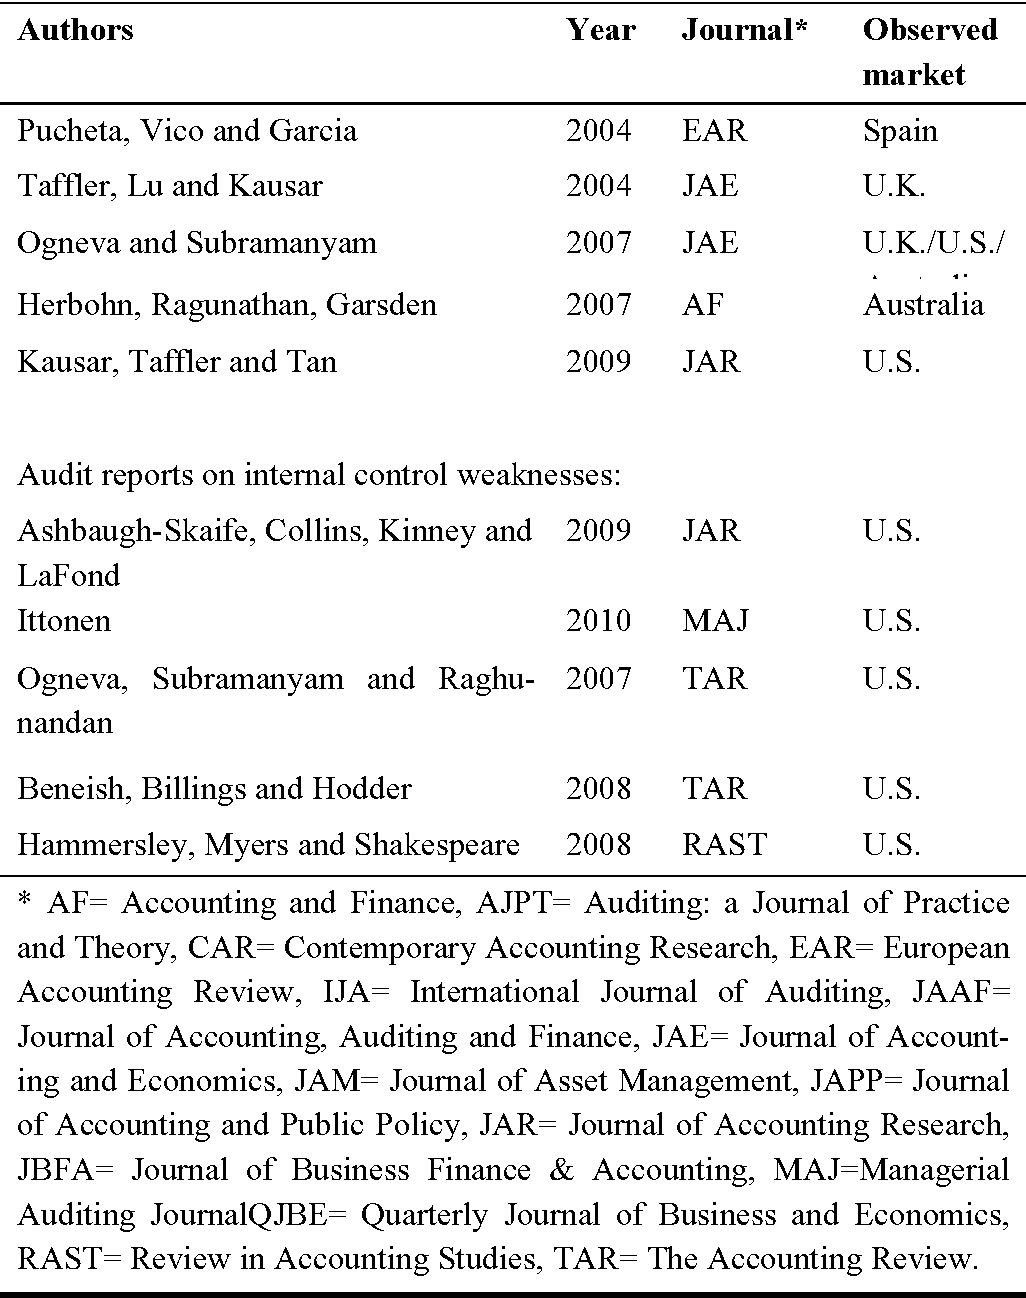 Table 1 from Examination of the Role of Auditing and the